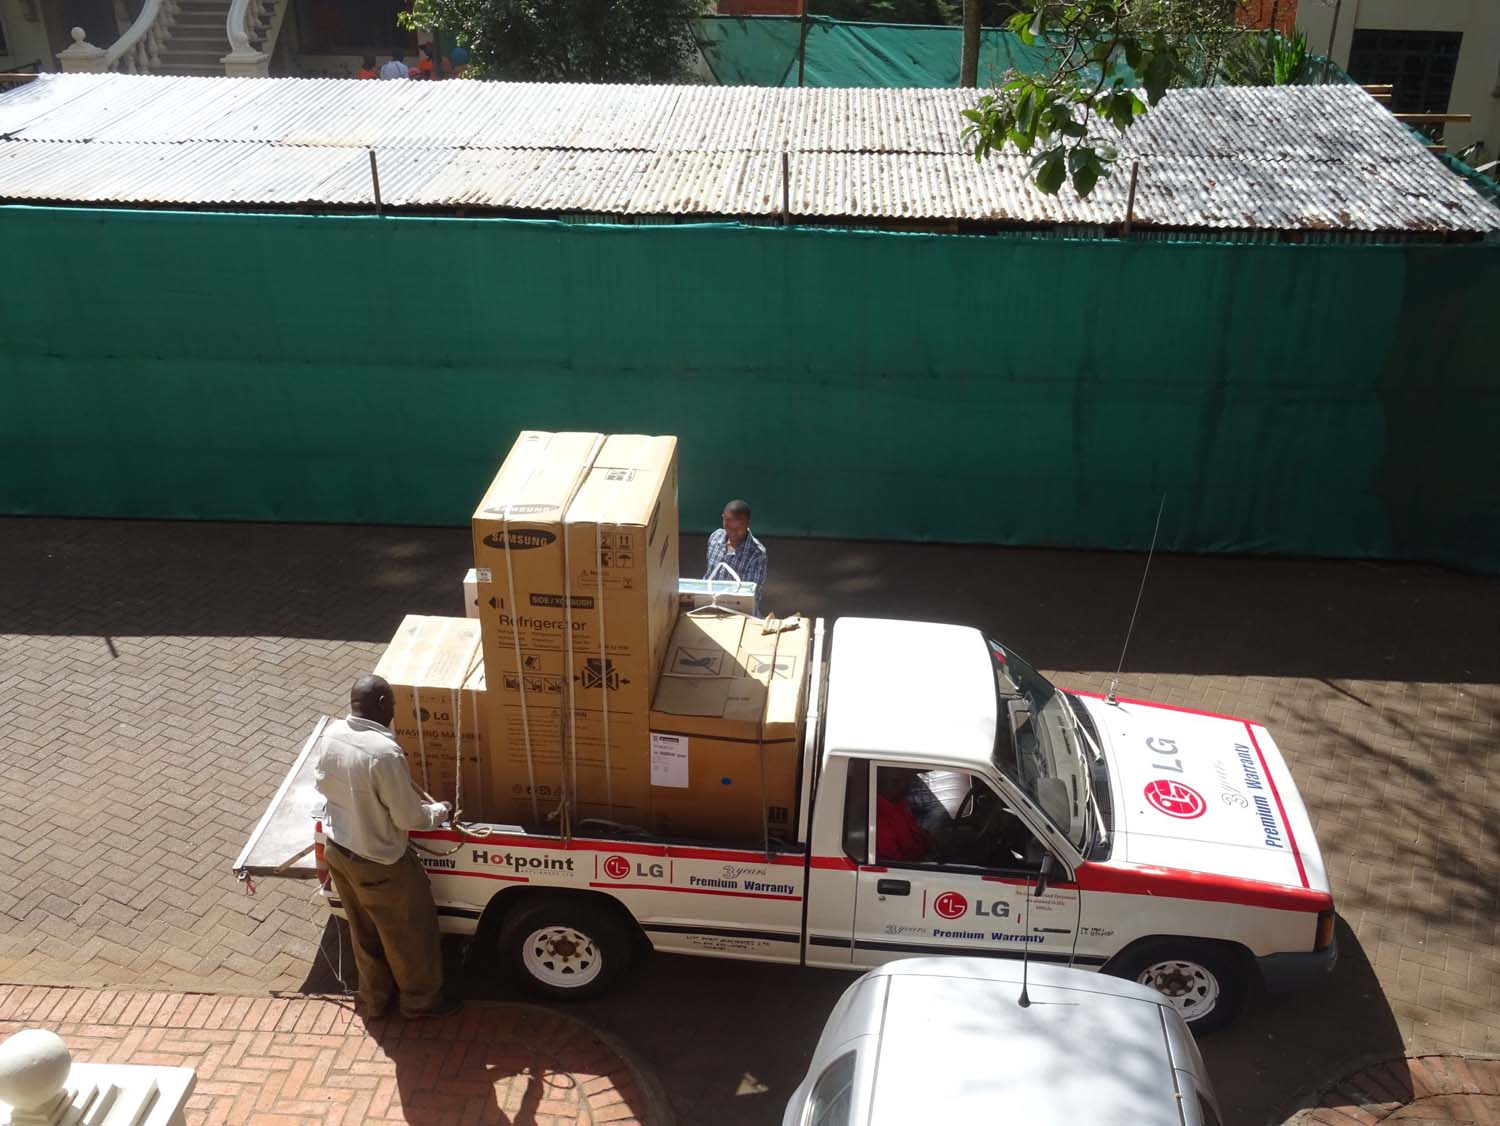 taking delivery of our fridge, stove and washing machine - a Kenyan house does not come with a stove...